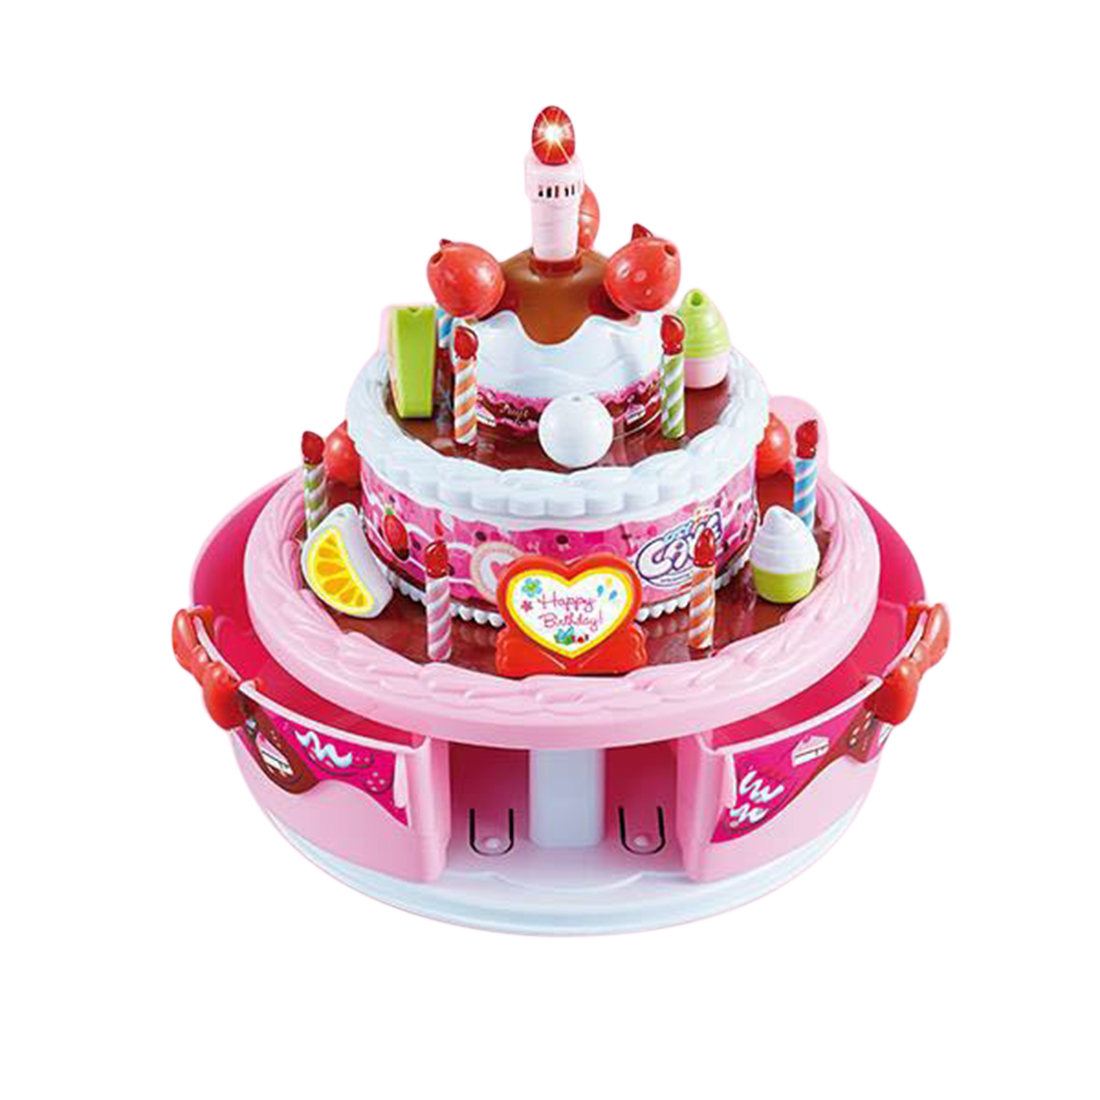 Pretend Play Record And Playback Toy Electric Musical Birthday Cake With Light Up Candle Song For Kids Gift